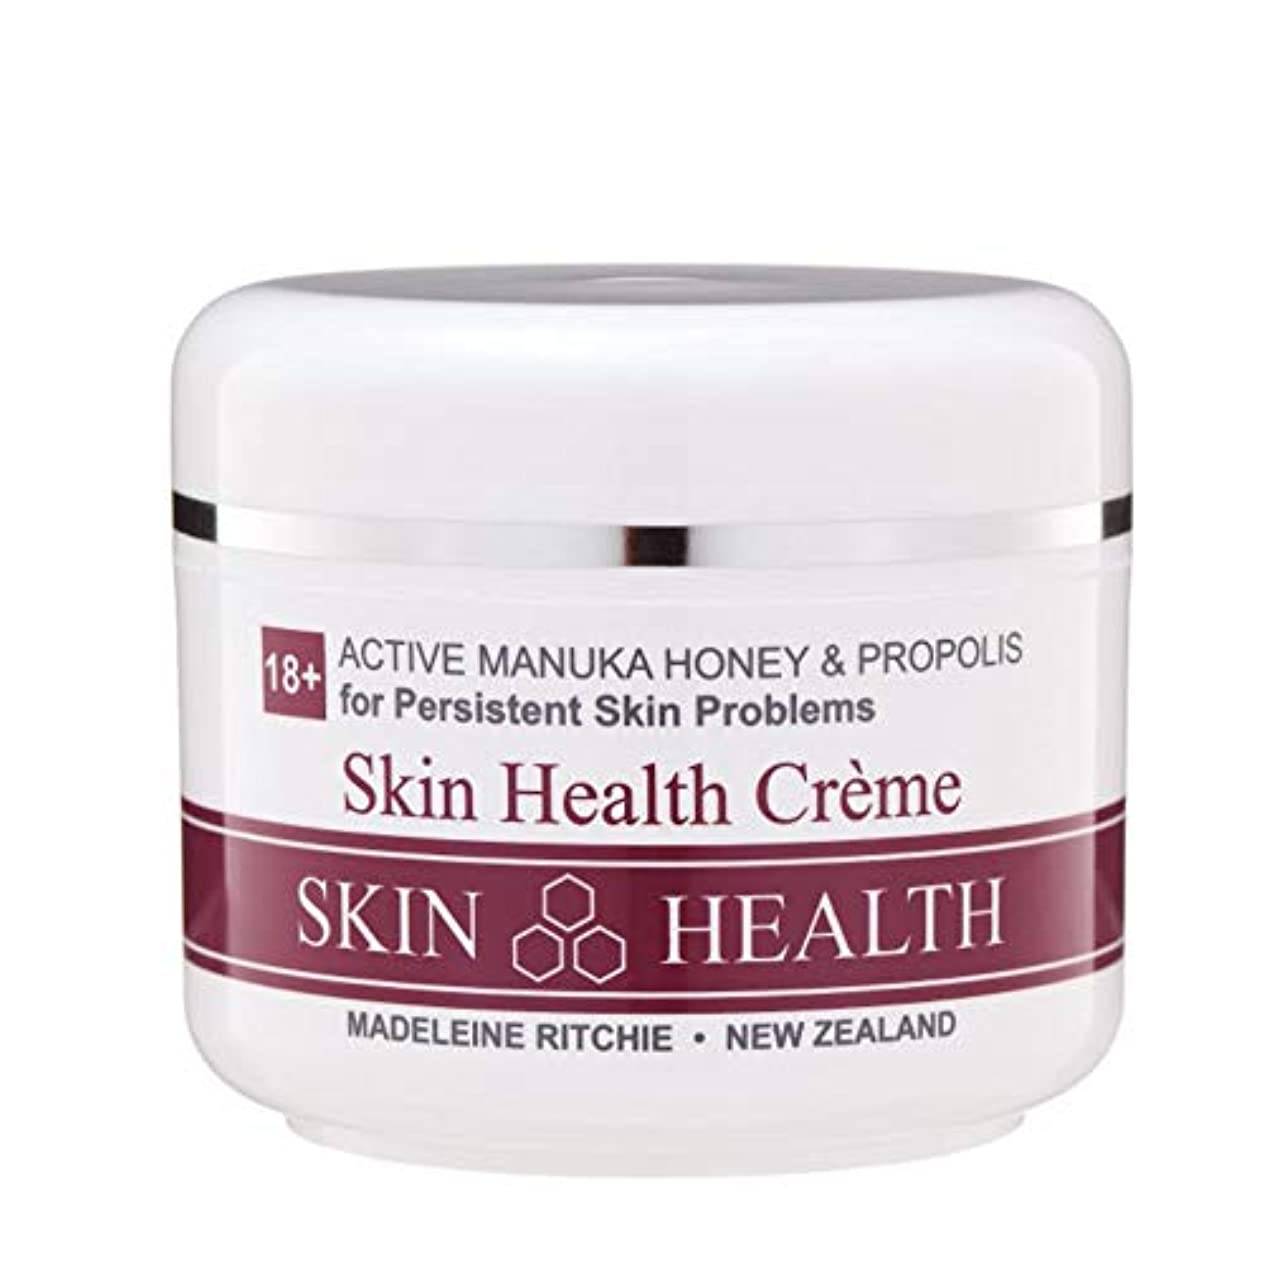 賭け売上高完璧なMadeleine Ritchie New Zealand 18+ Active Manuka Honey Skin Health Cream Jar 100ml